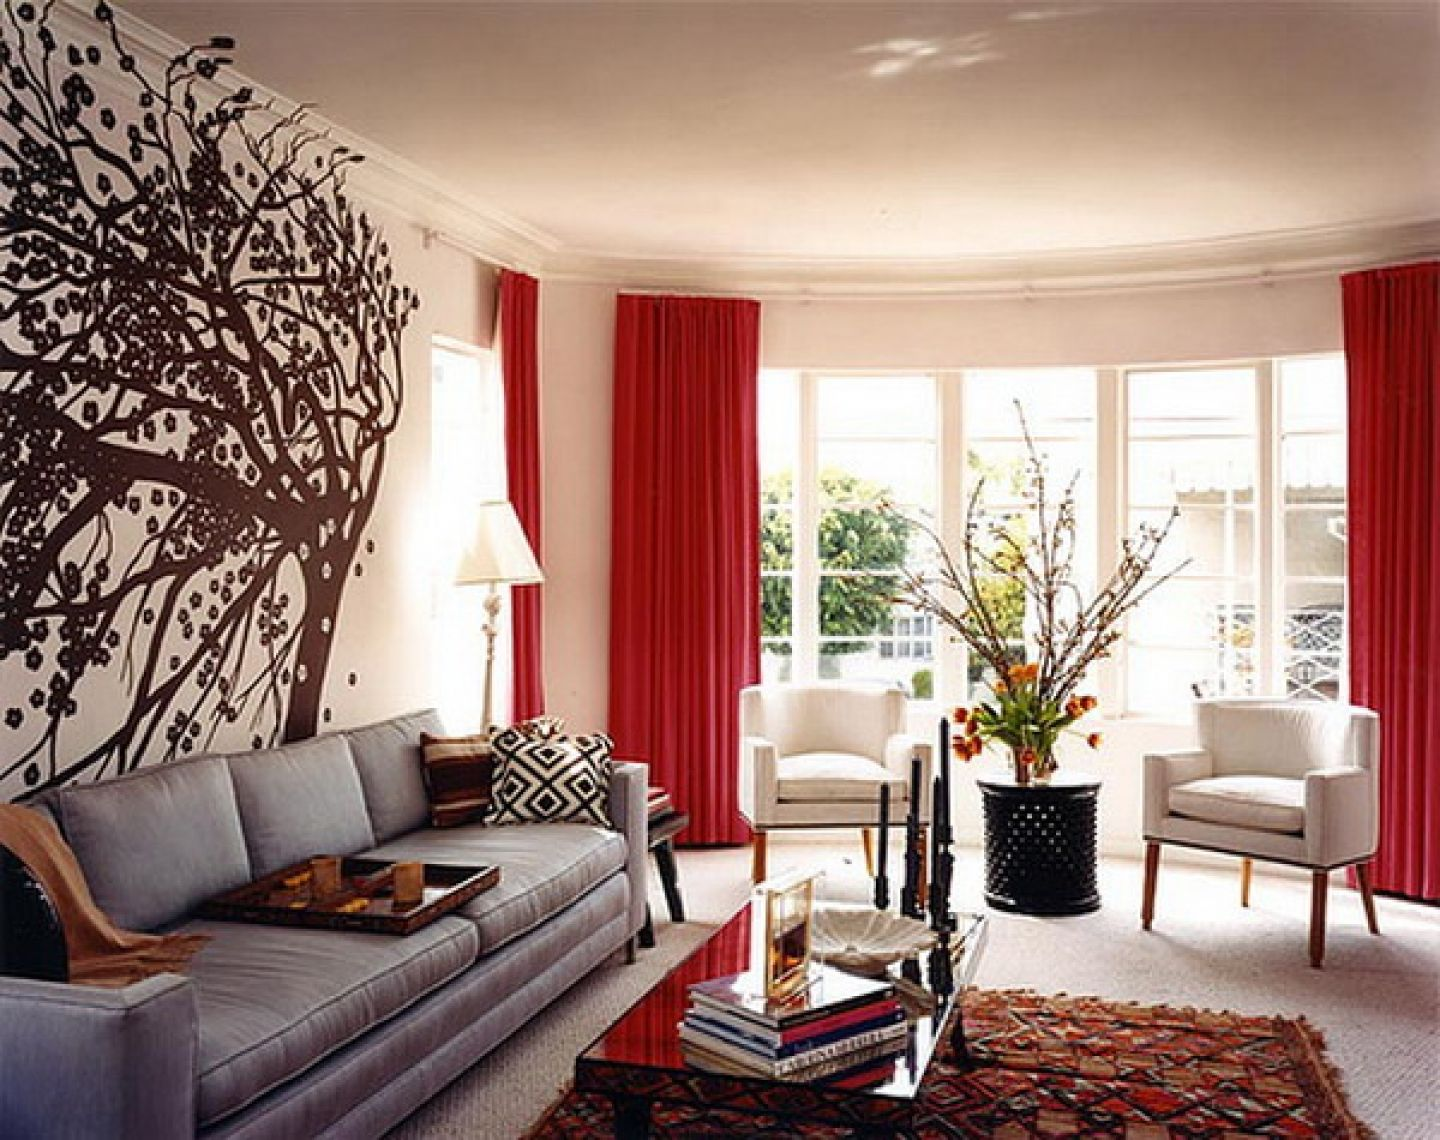 Decoration Terrific Contemporary Red Wall Room Ideas With White